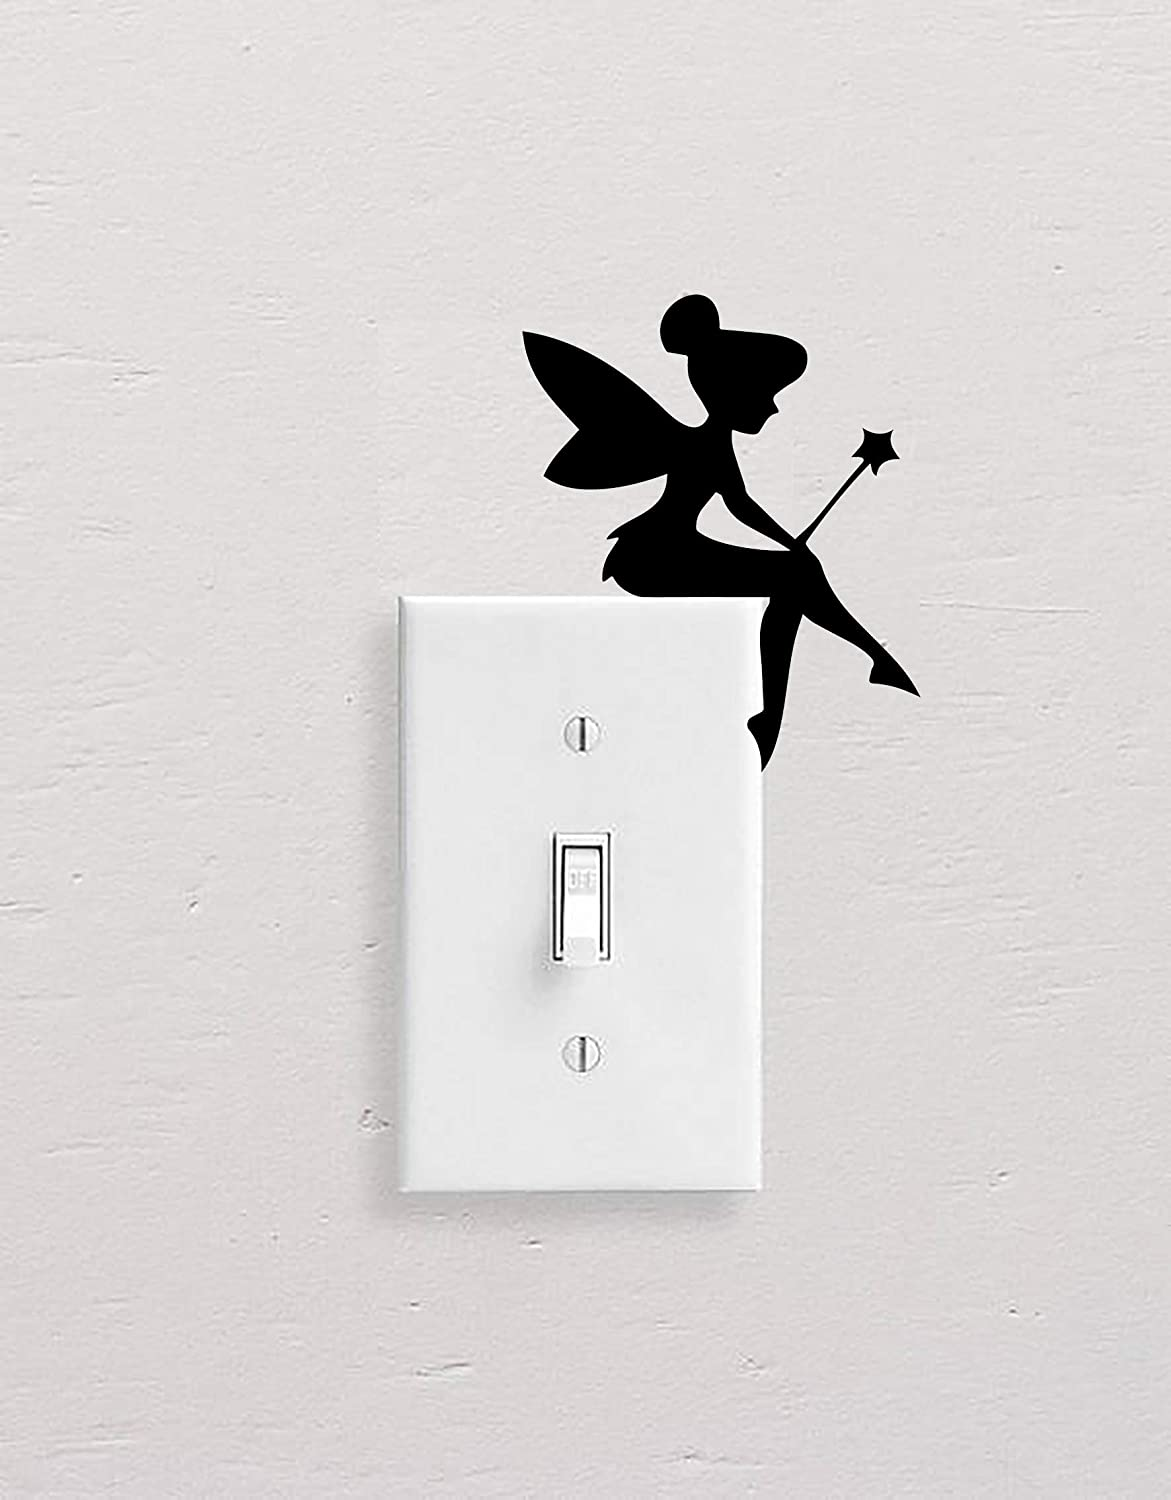 Vinyl Decal Sticker |Tinkerbell Fairy| for Light Switch, Wall, Laptop, Water Bottle, Car, SUV, Bikes and Home Decor